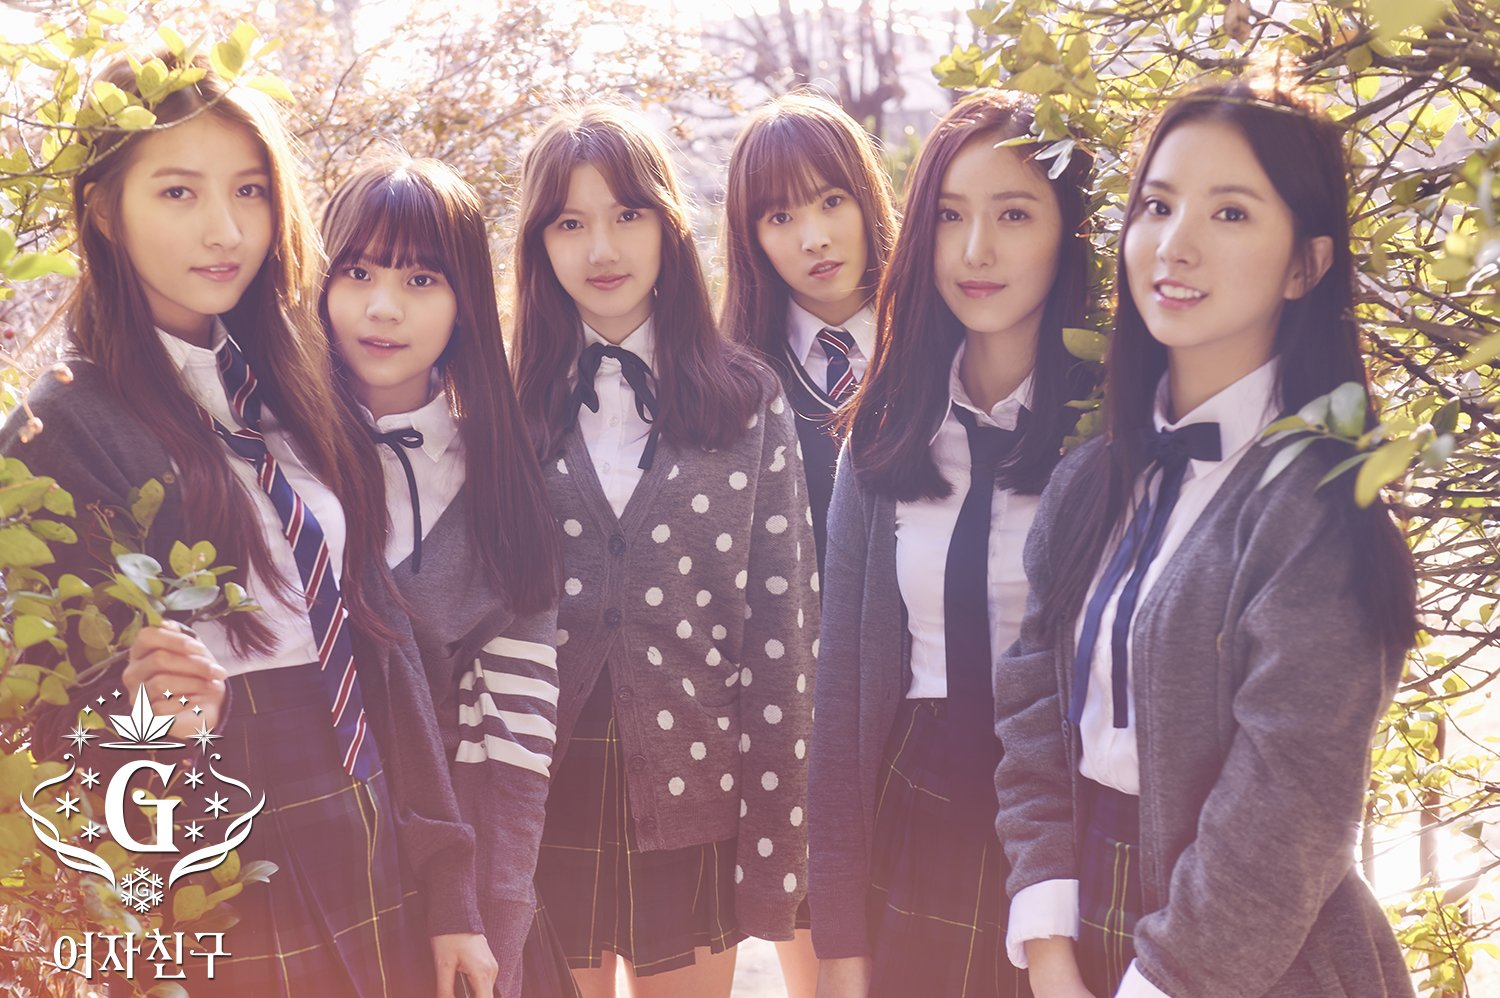 GFRIEND Had Initial Doubts About Their Group Name